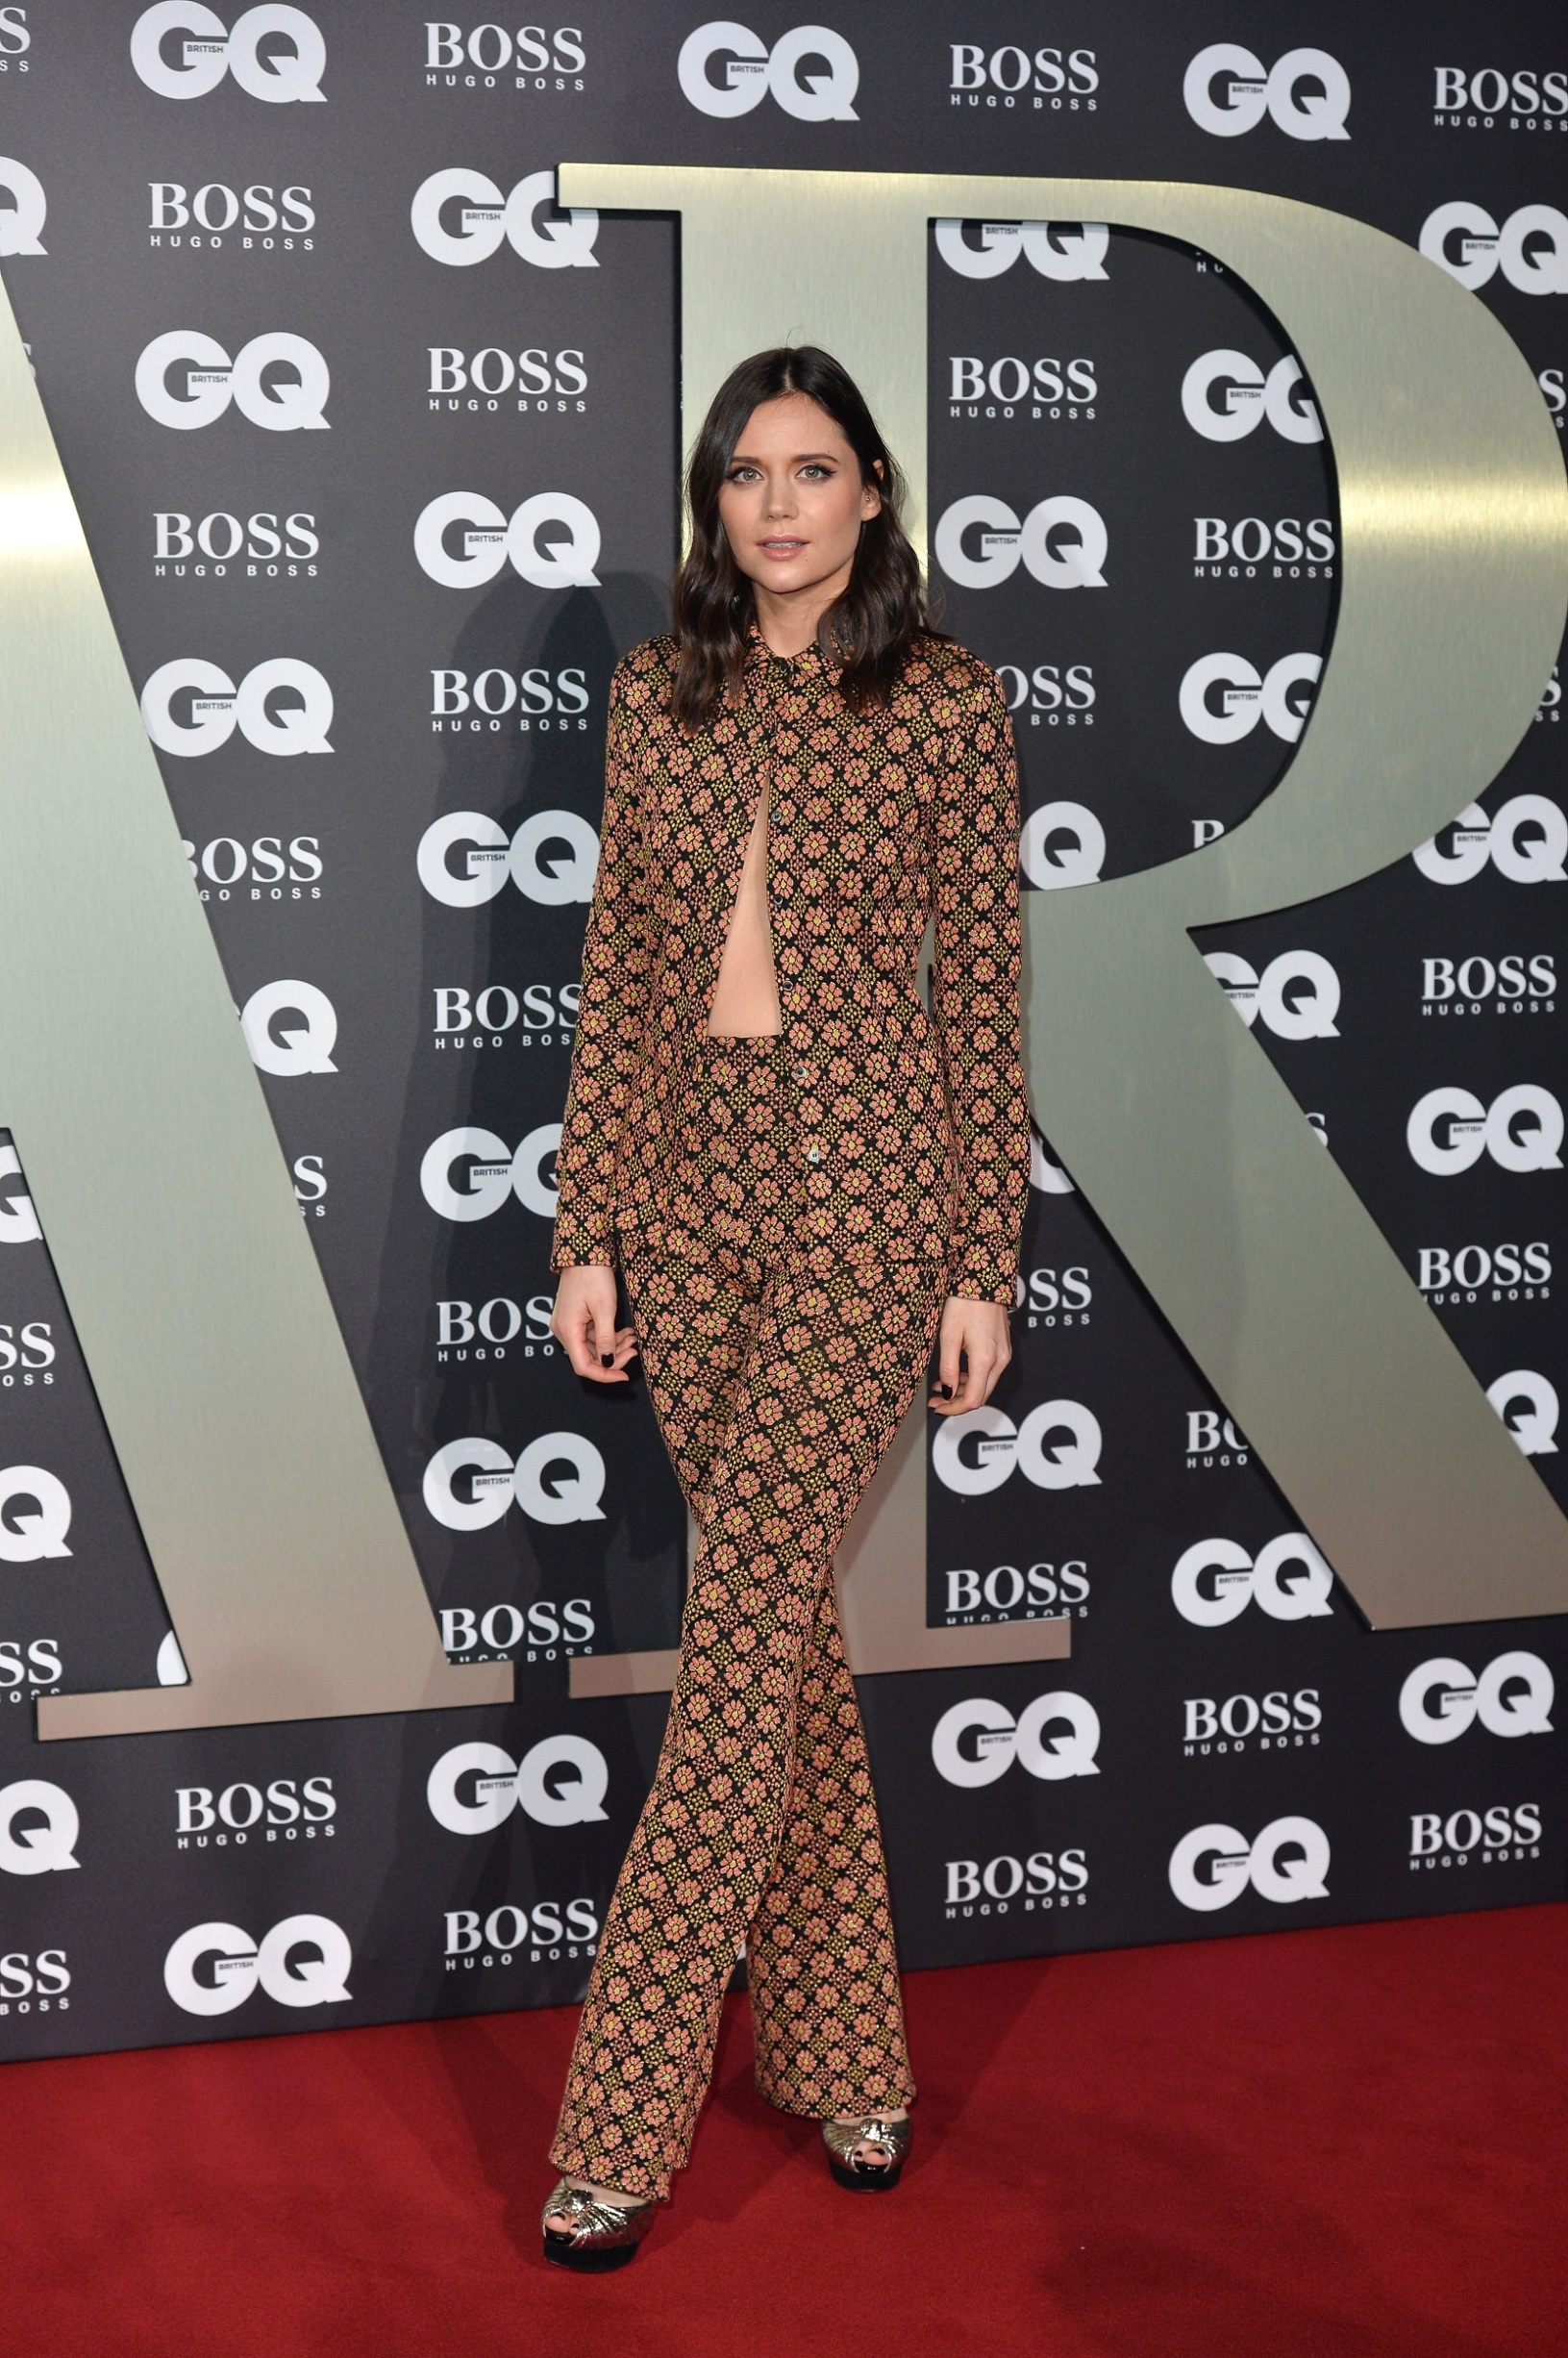 LONDON, ENGLAND - SEPTEMBER 03: Lilah Parsons attends the GQ Men Of The Year Awards 2019 at Tate Modern on September 03, 2019 in London, England. (Photo by Jeff Spicer/Getty Images)